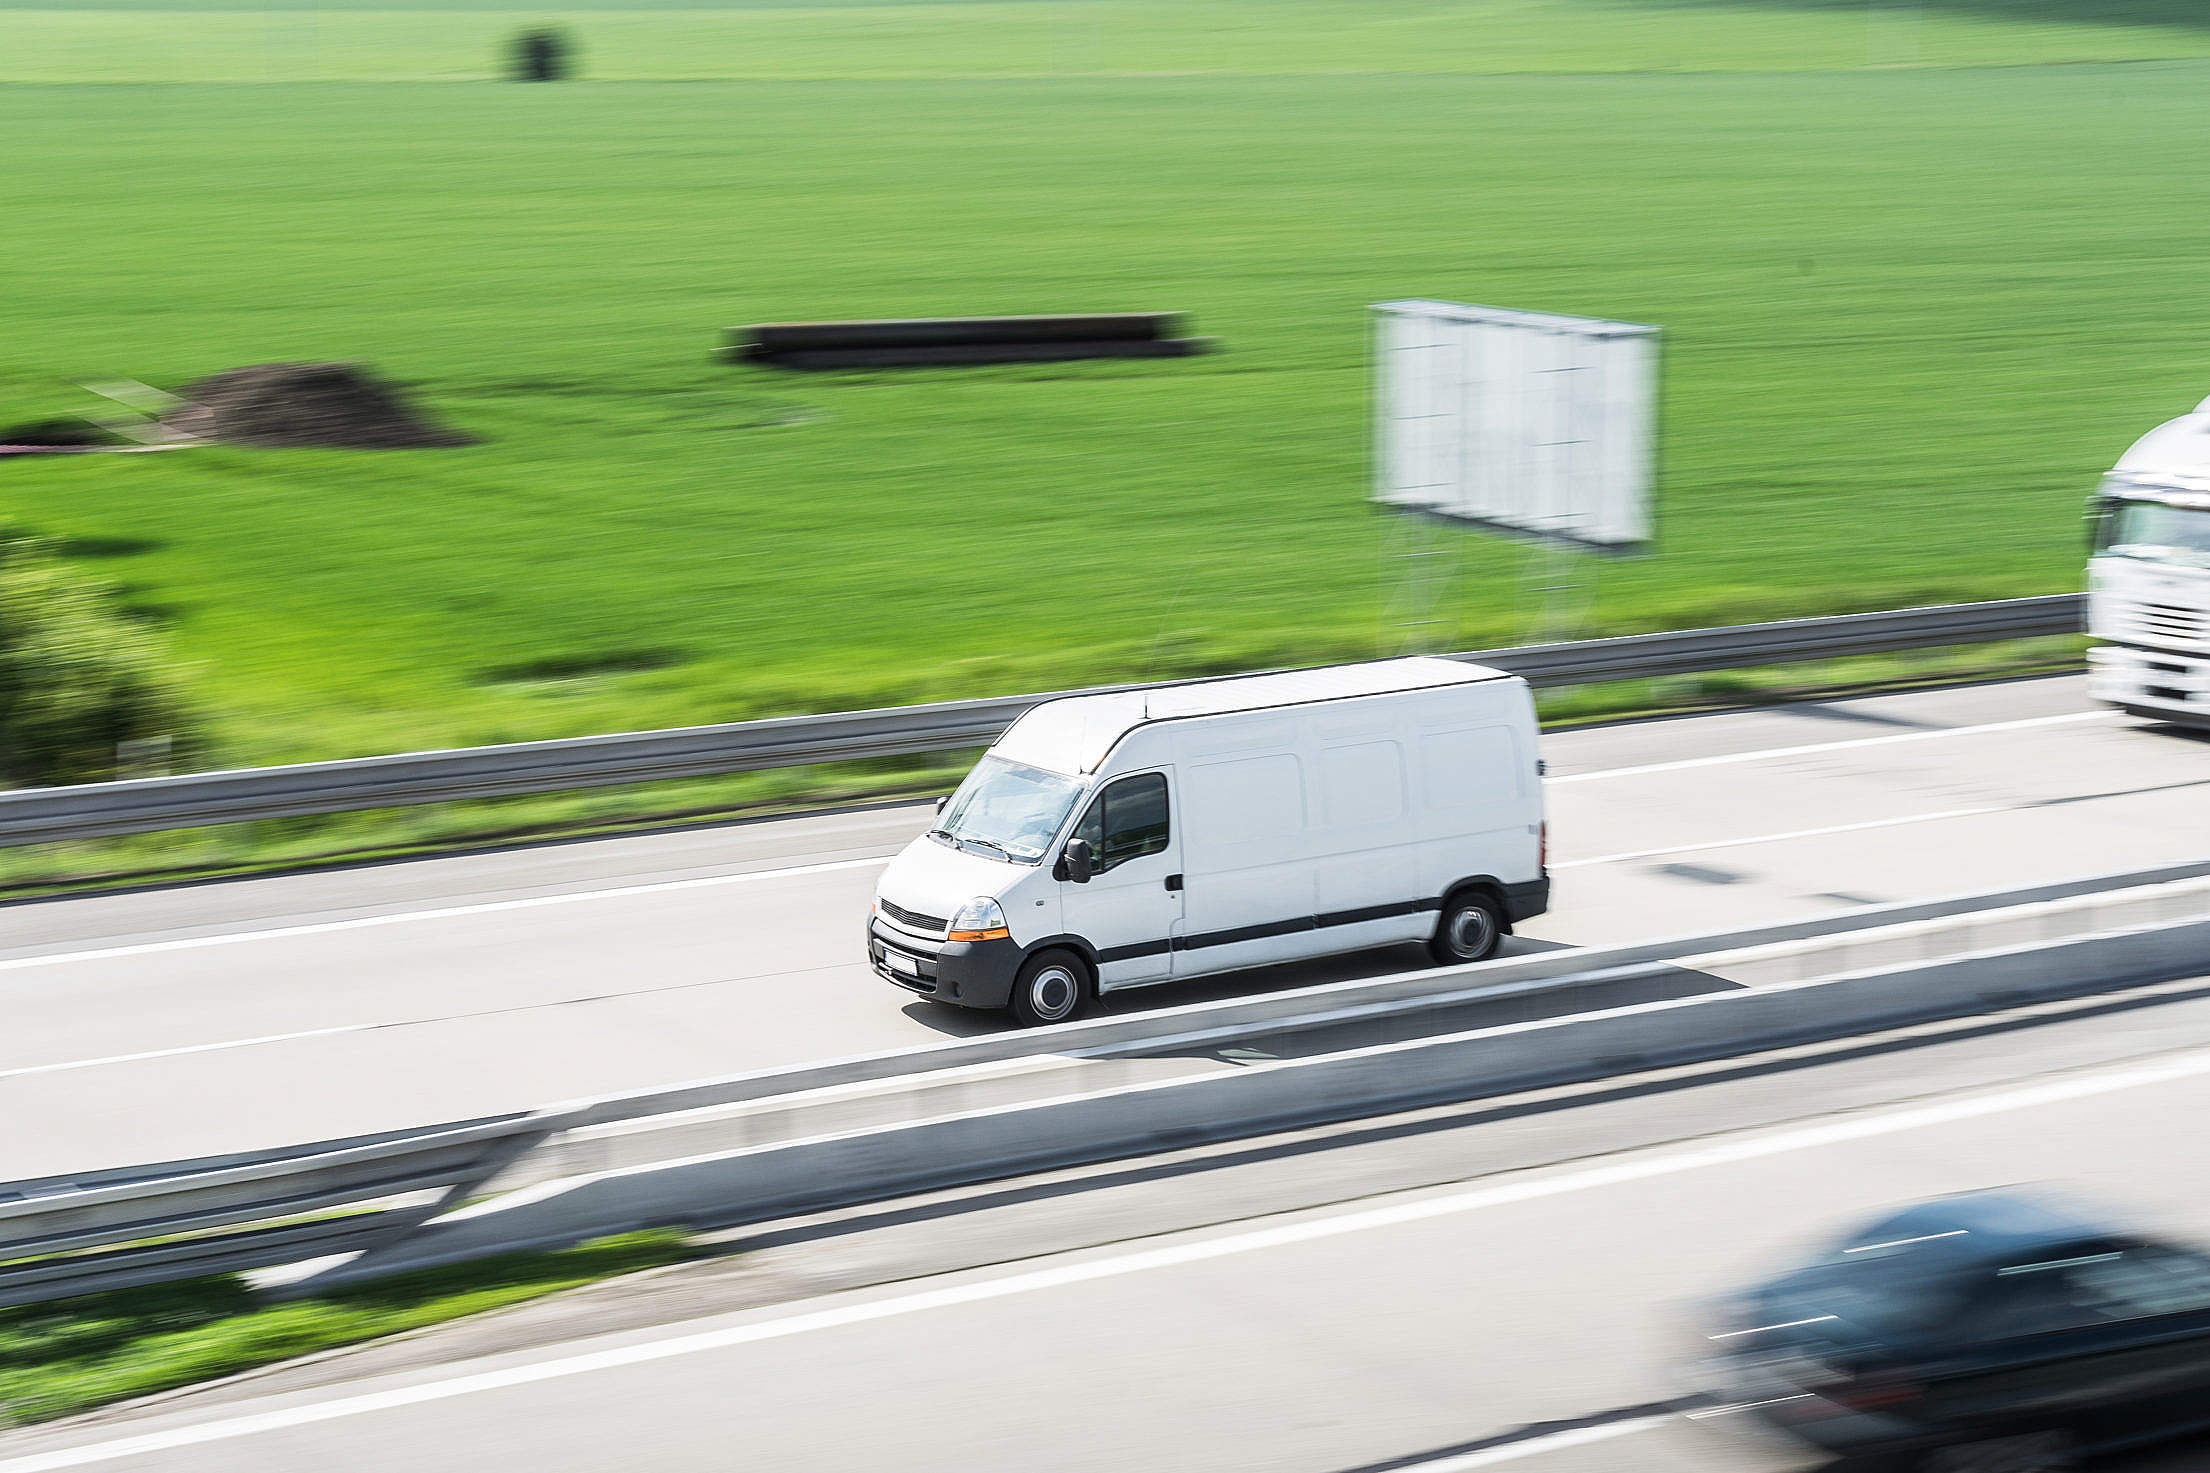 White Delivery Van in Motion Driving on Highway Free Stock Photo